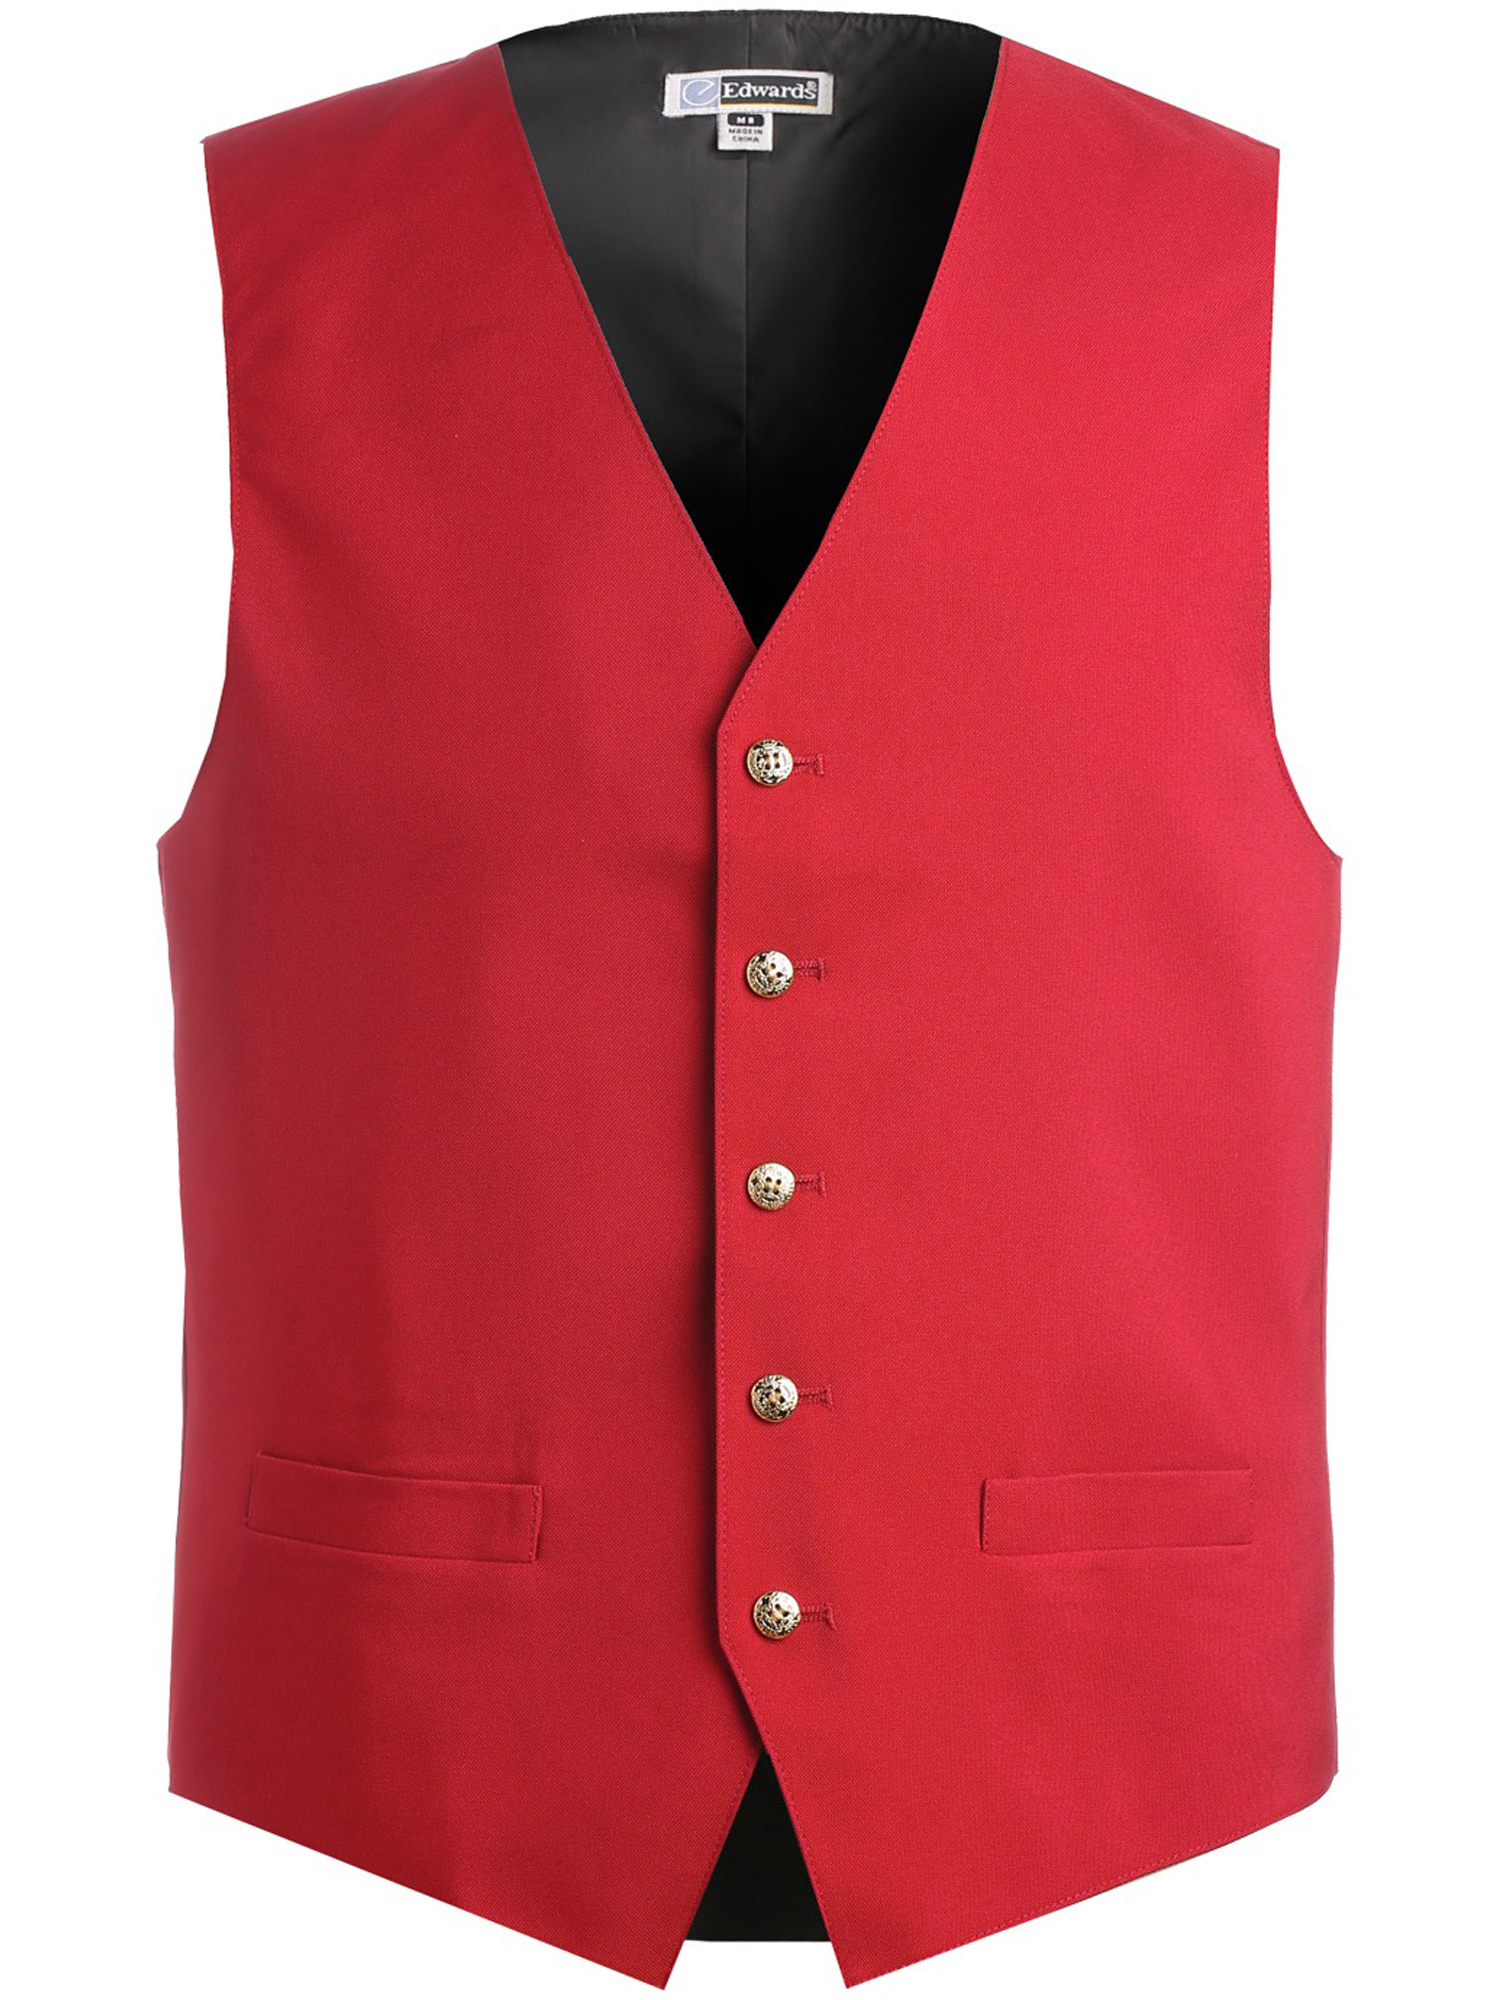 Ed Garments Men's Textured Weave Fully Lined Economy Vest, RED, Large Tall